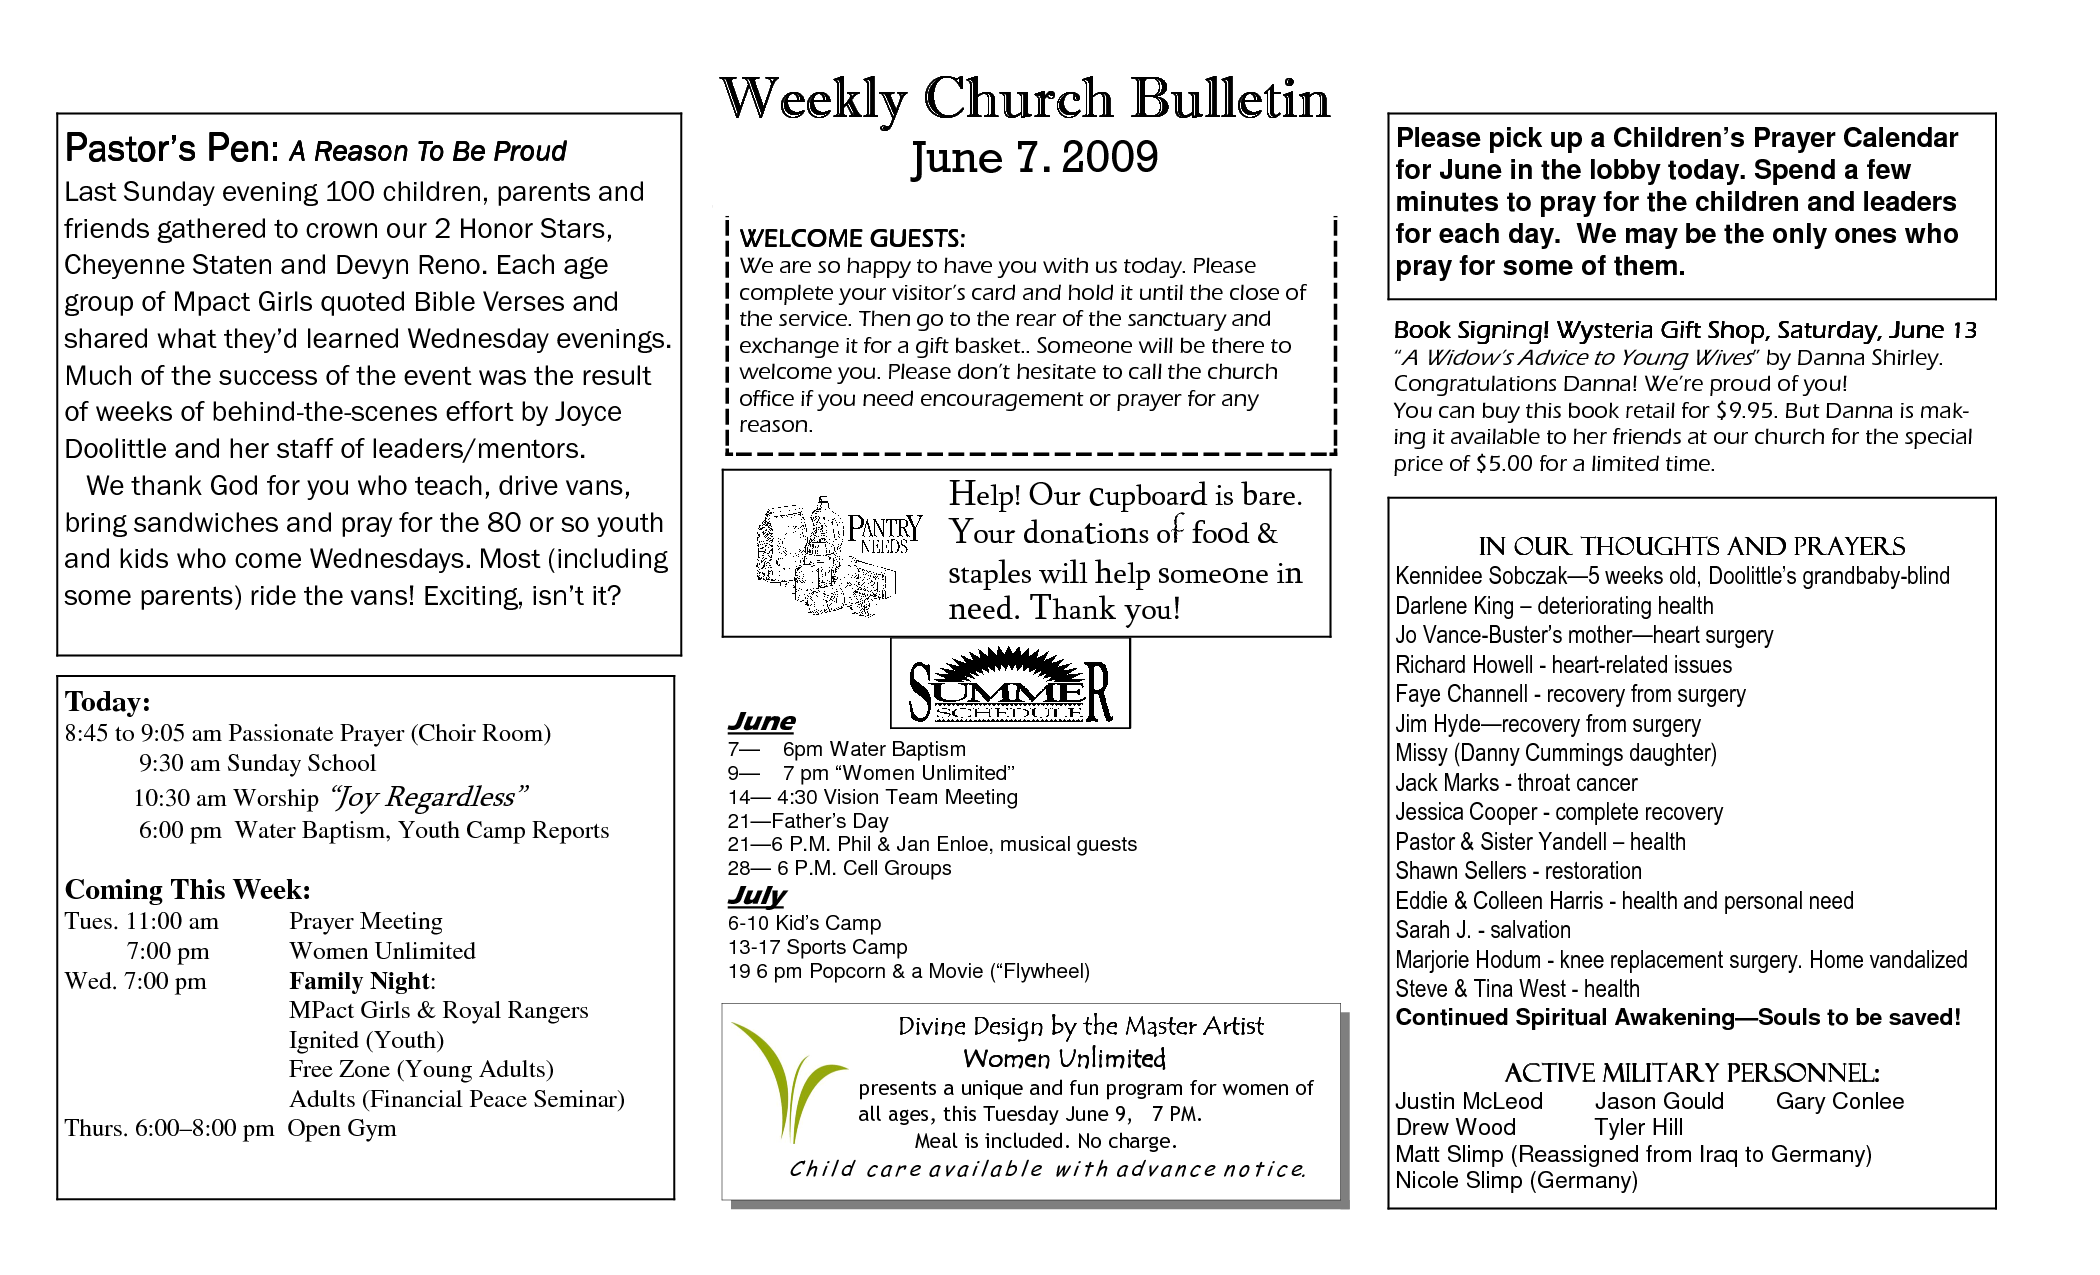 sample church bulletins templates - baptist church bulletins for quotes quotesgram